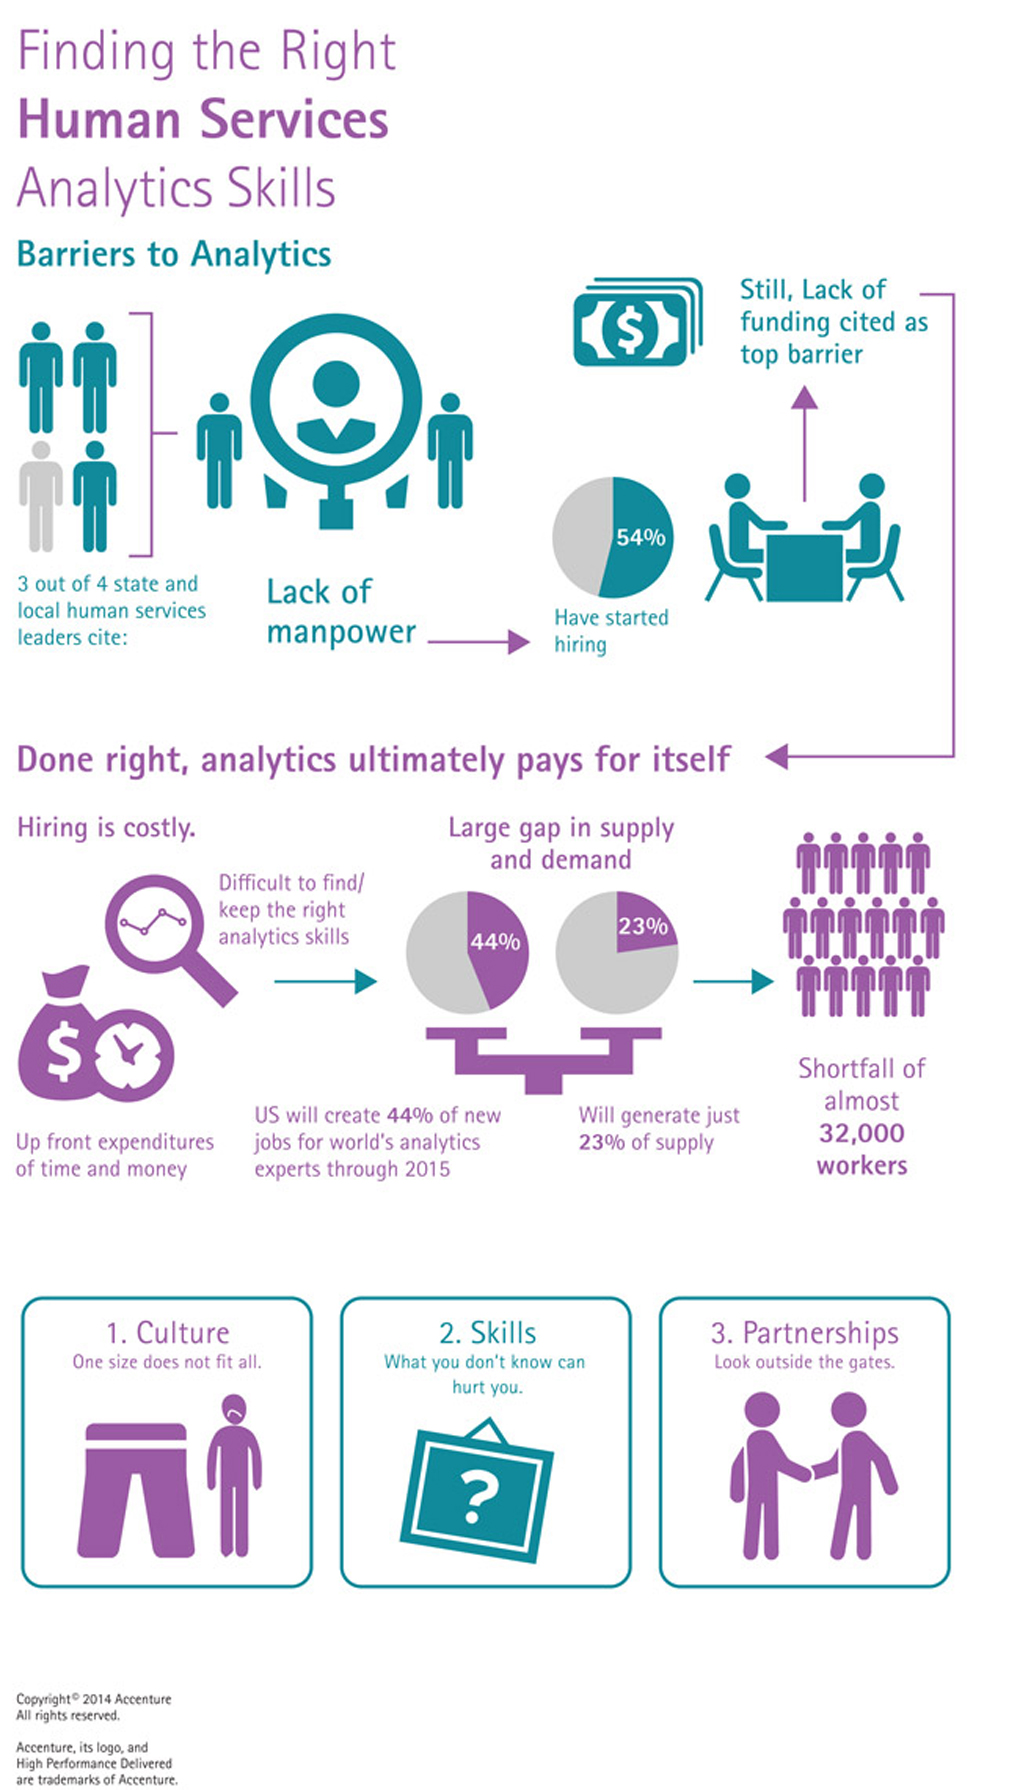 Finding Human Services Analytics Skills